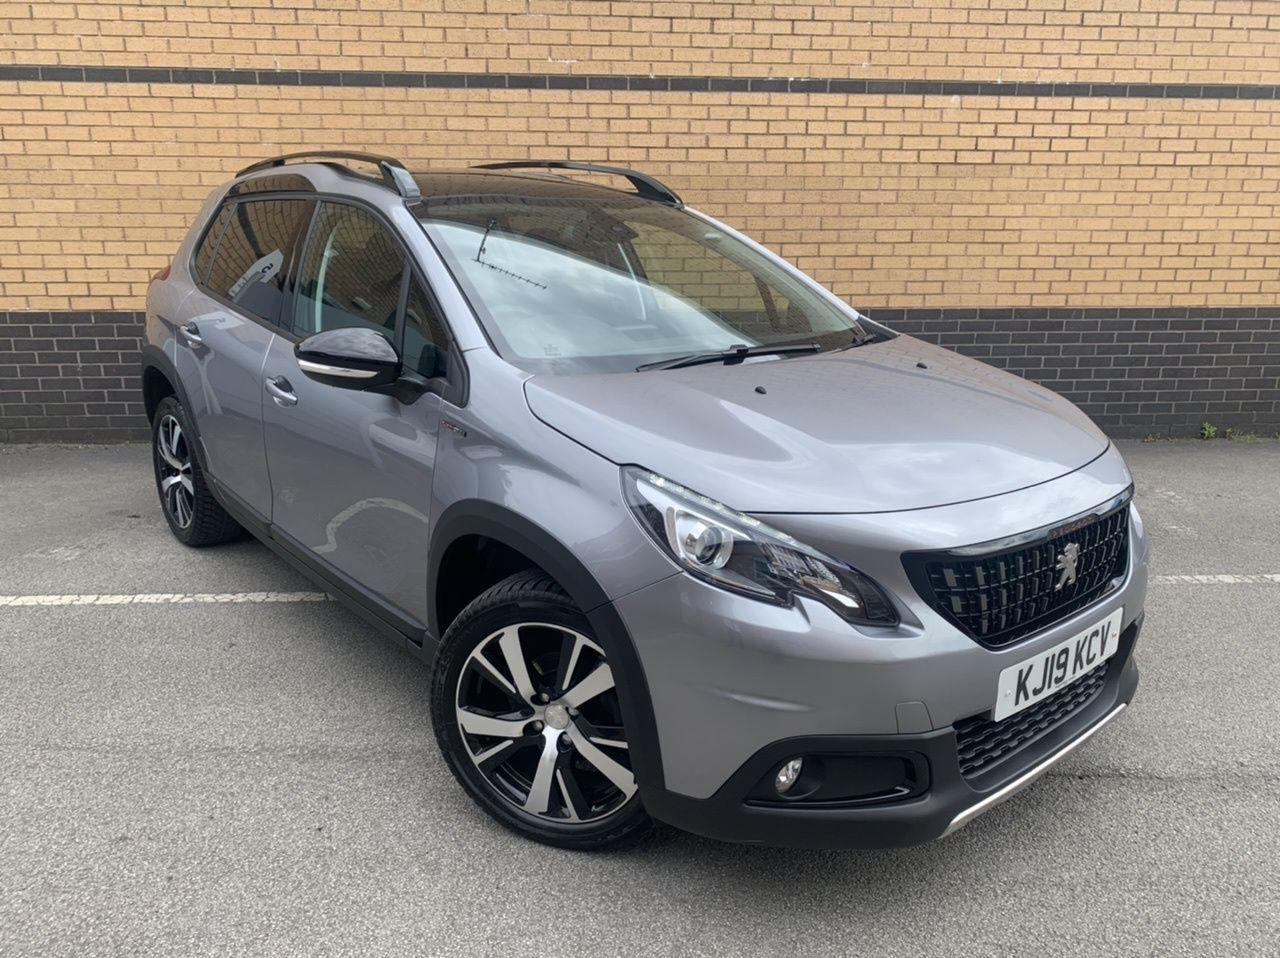 Peugeot 2008 1.5 BlueHDi 100 GT Line 5dr [5 Speed]